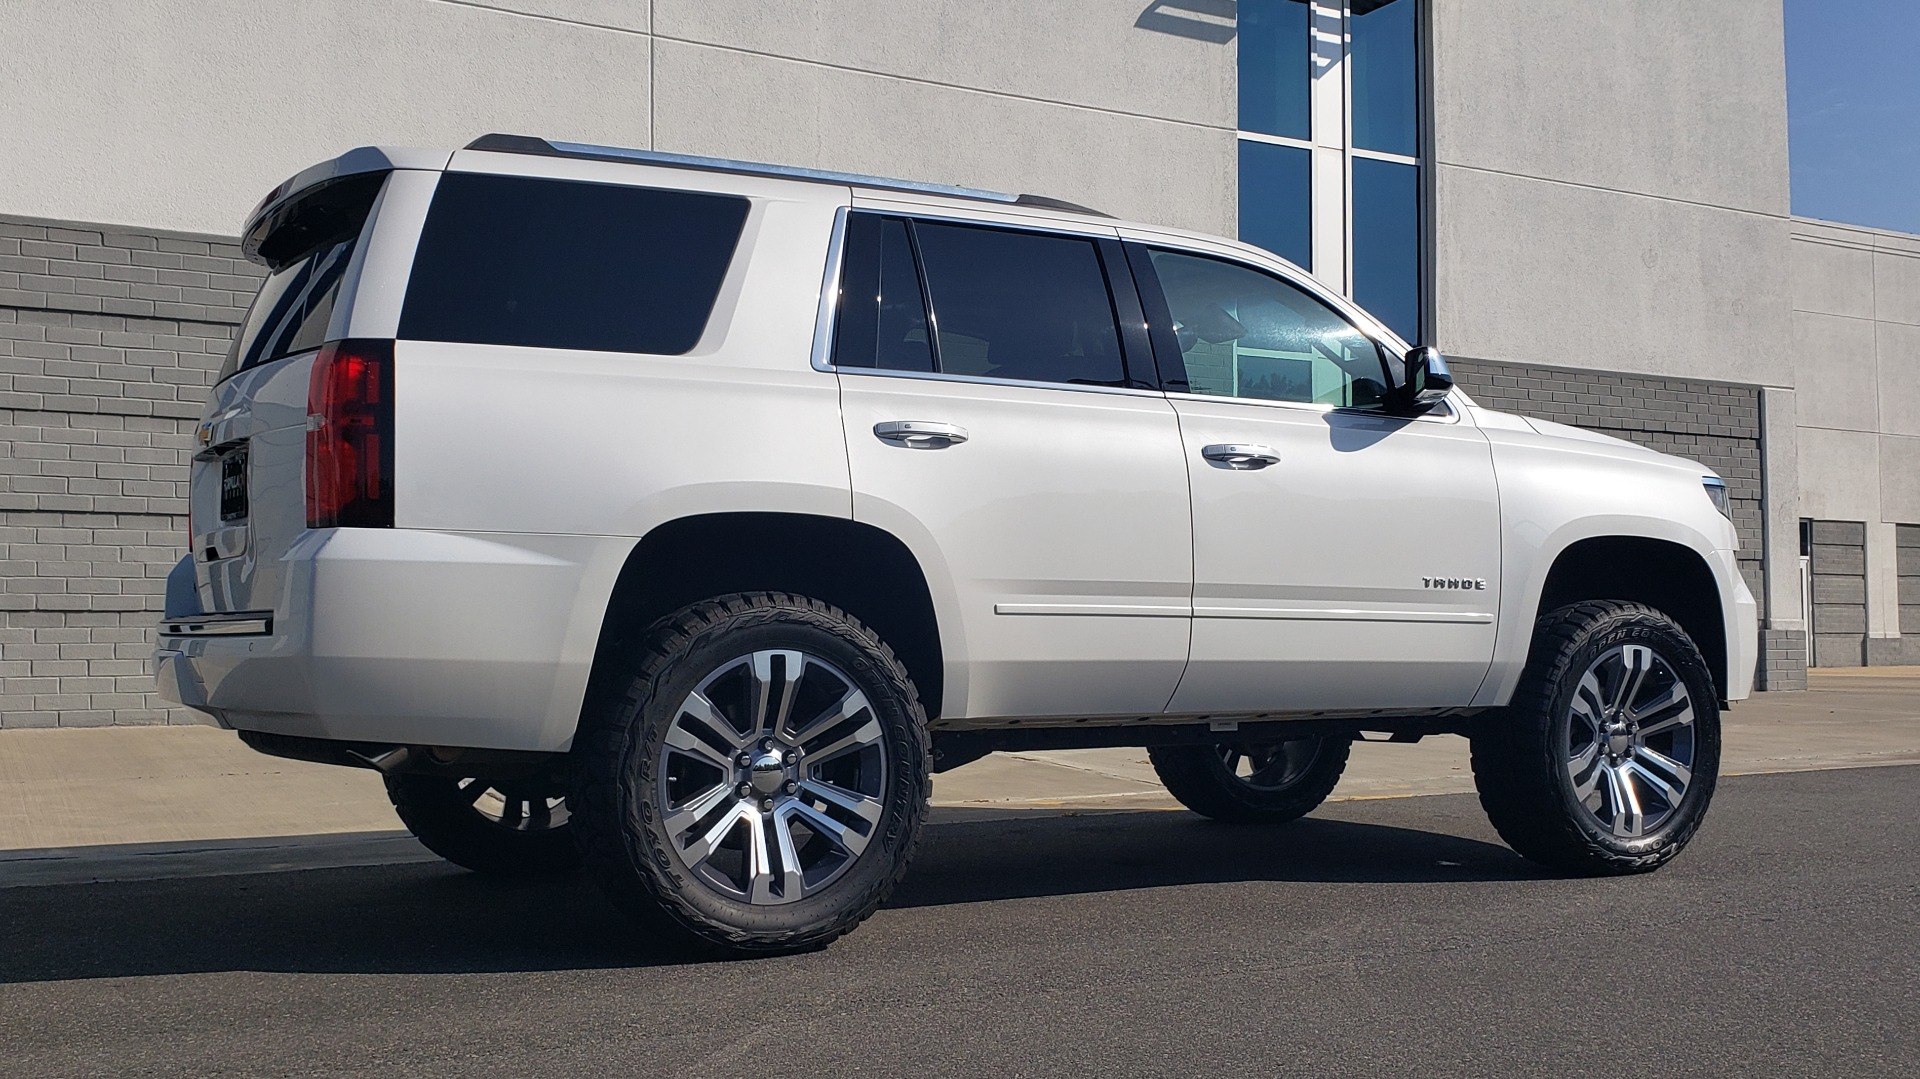 Used 2018 Chevrolet TAHOE PREMIER 4X4 / NAV / BOSE / SUNROOF / ENT SYS / 3-ROW / REARVIEW for sale $55,995 at Formula Imports in Charlotte NC 28227 8